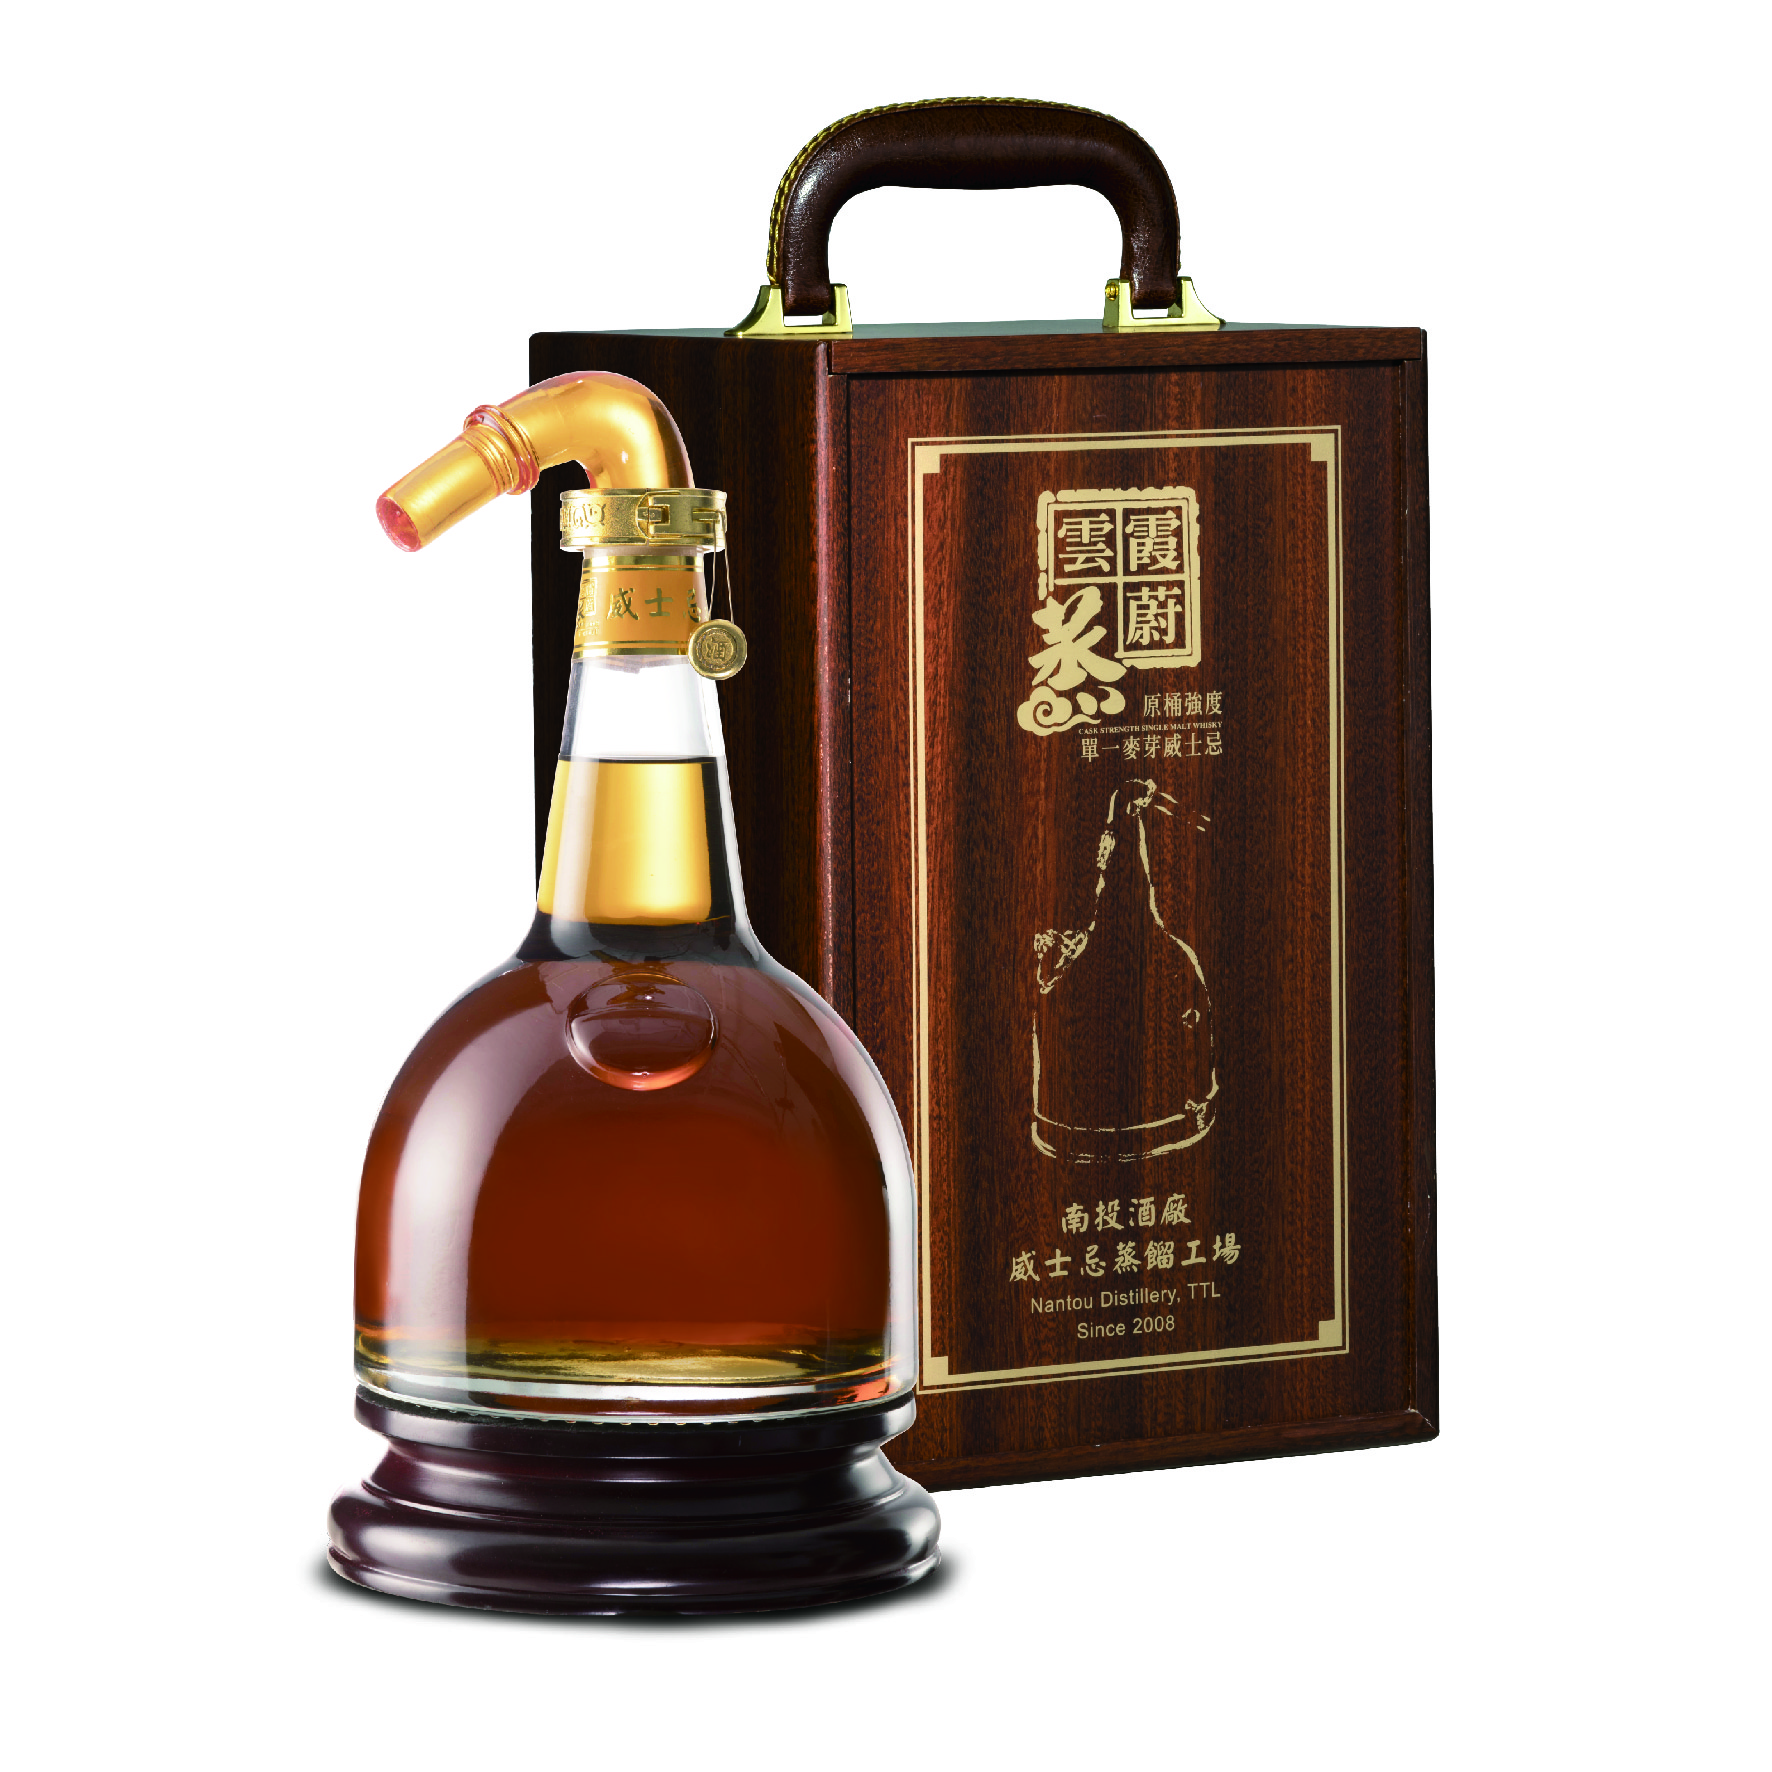 FEATURING PRODUCT IN AUGUST-1L Cask Strength Whisky